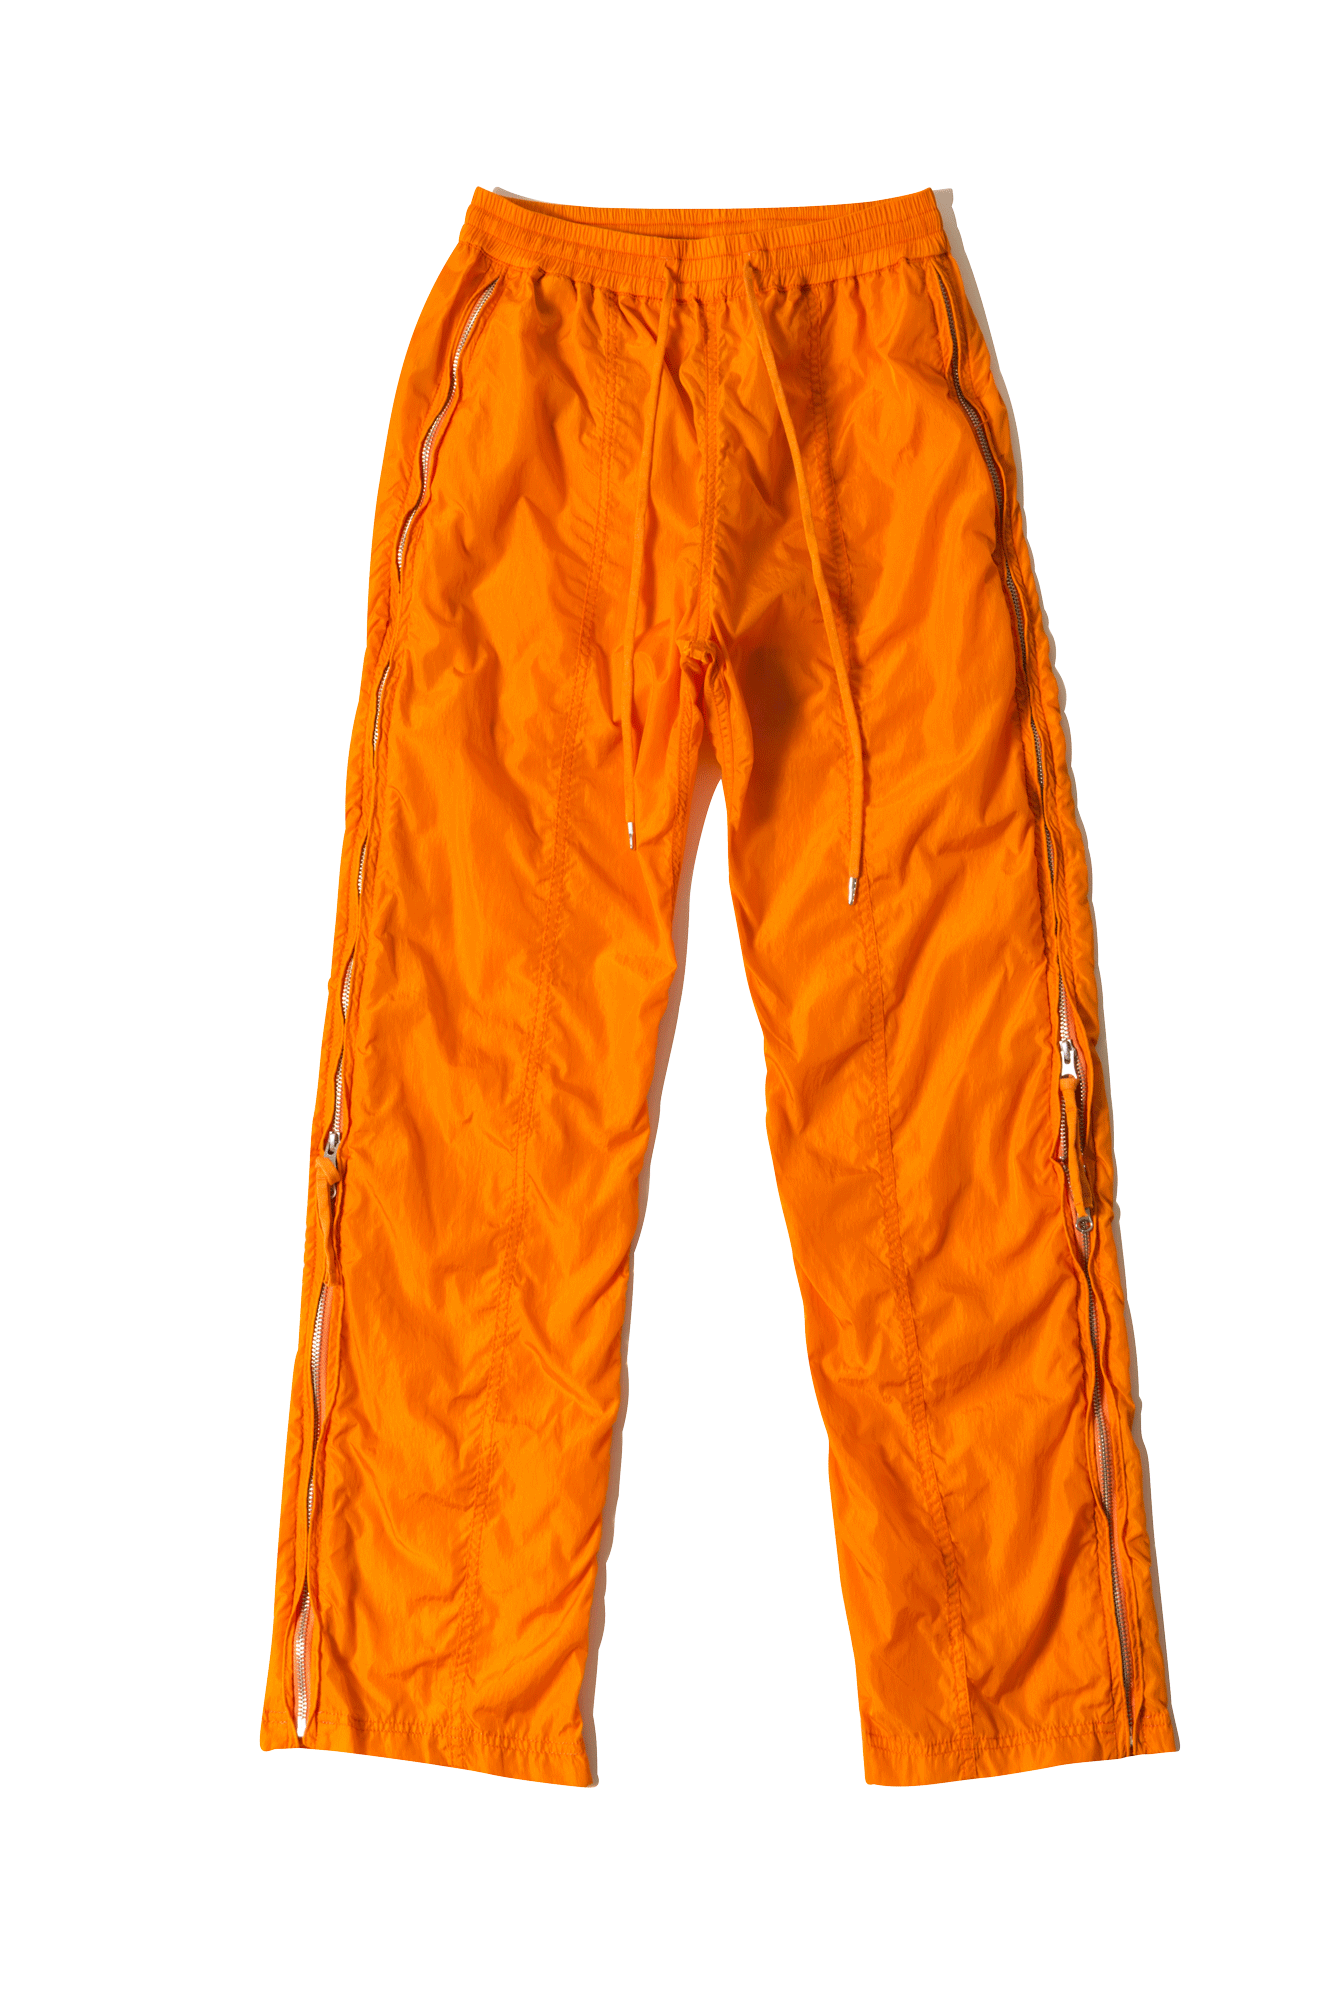 Pants transparent orange. Hidden pocket long pant